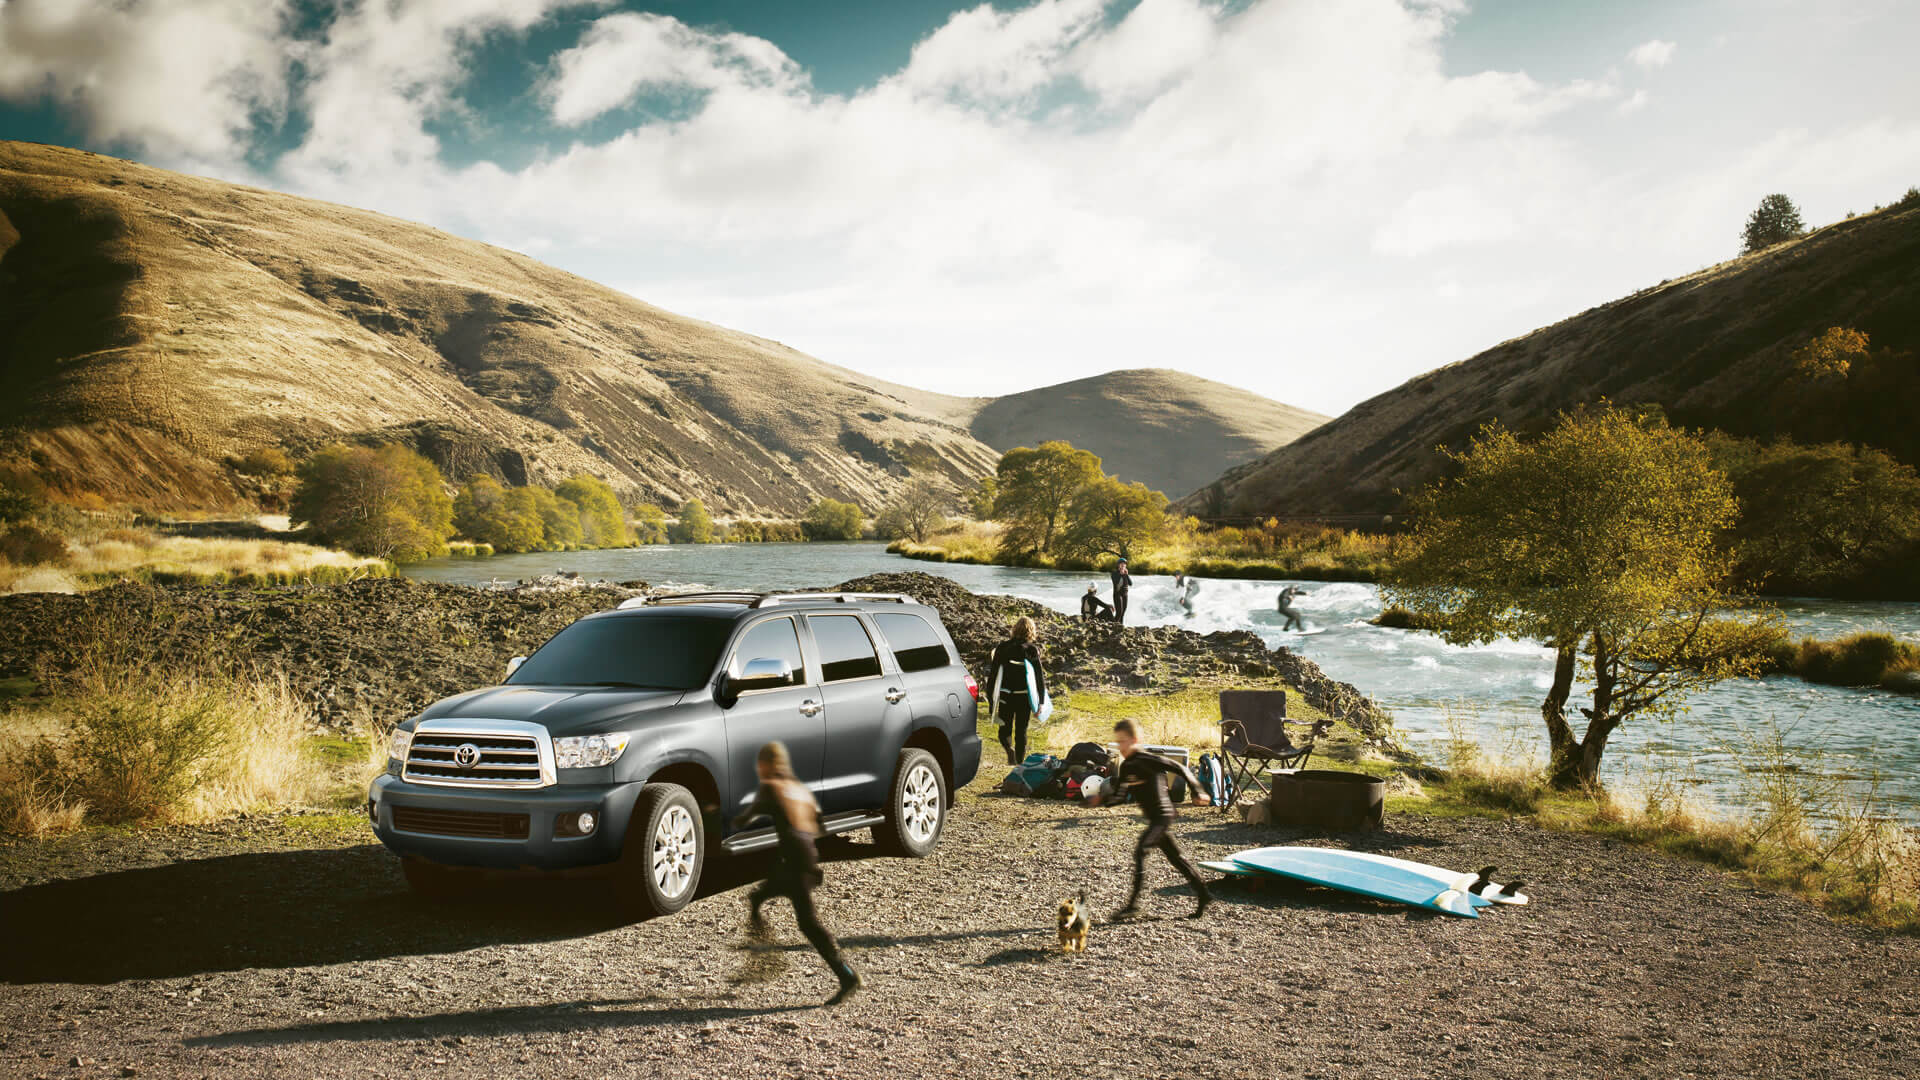 2016 Toyota Sequoia lake